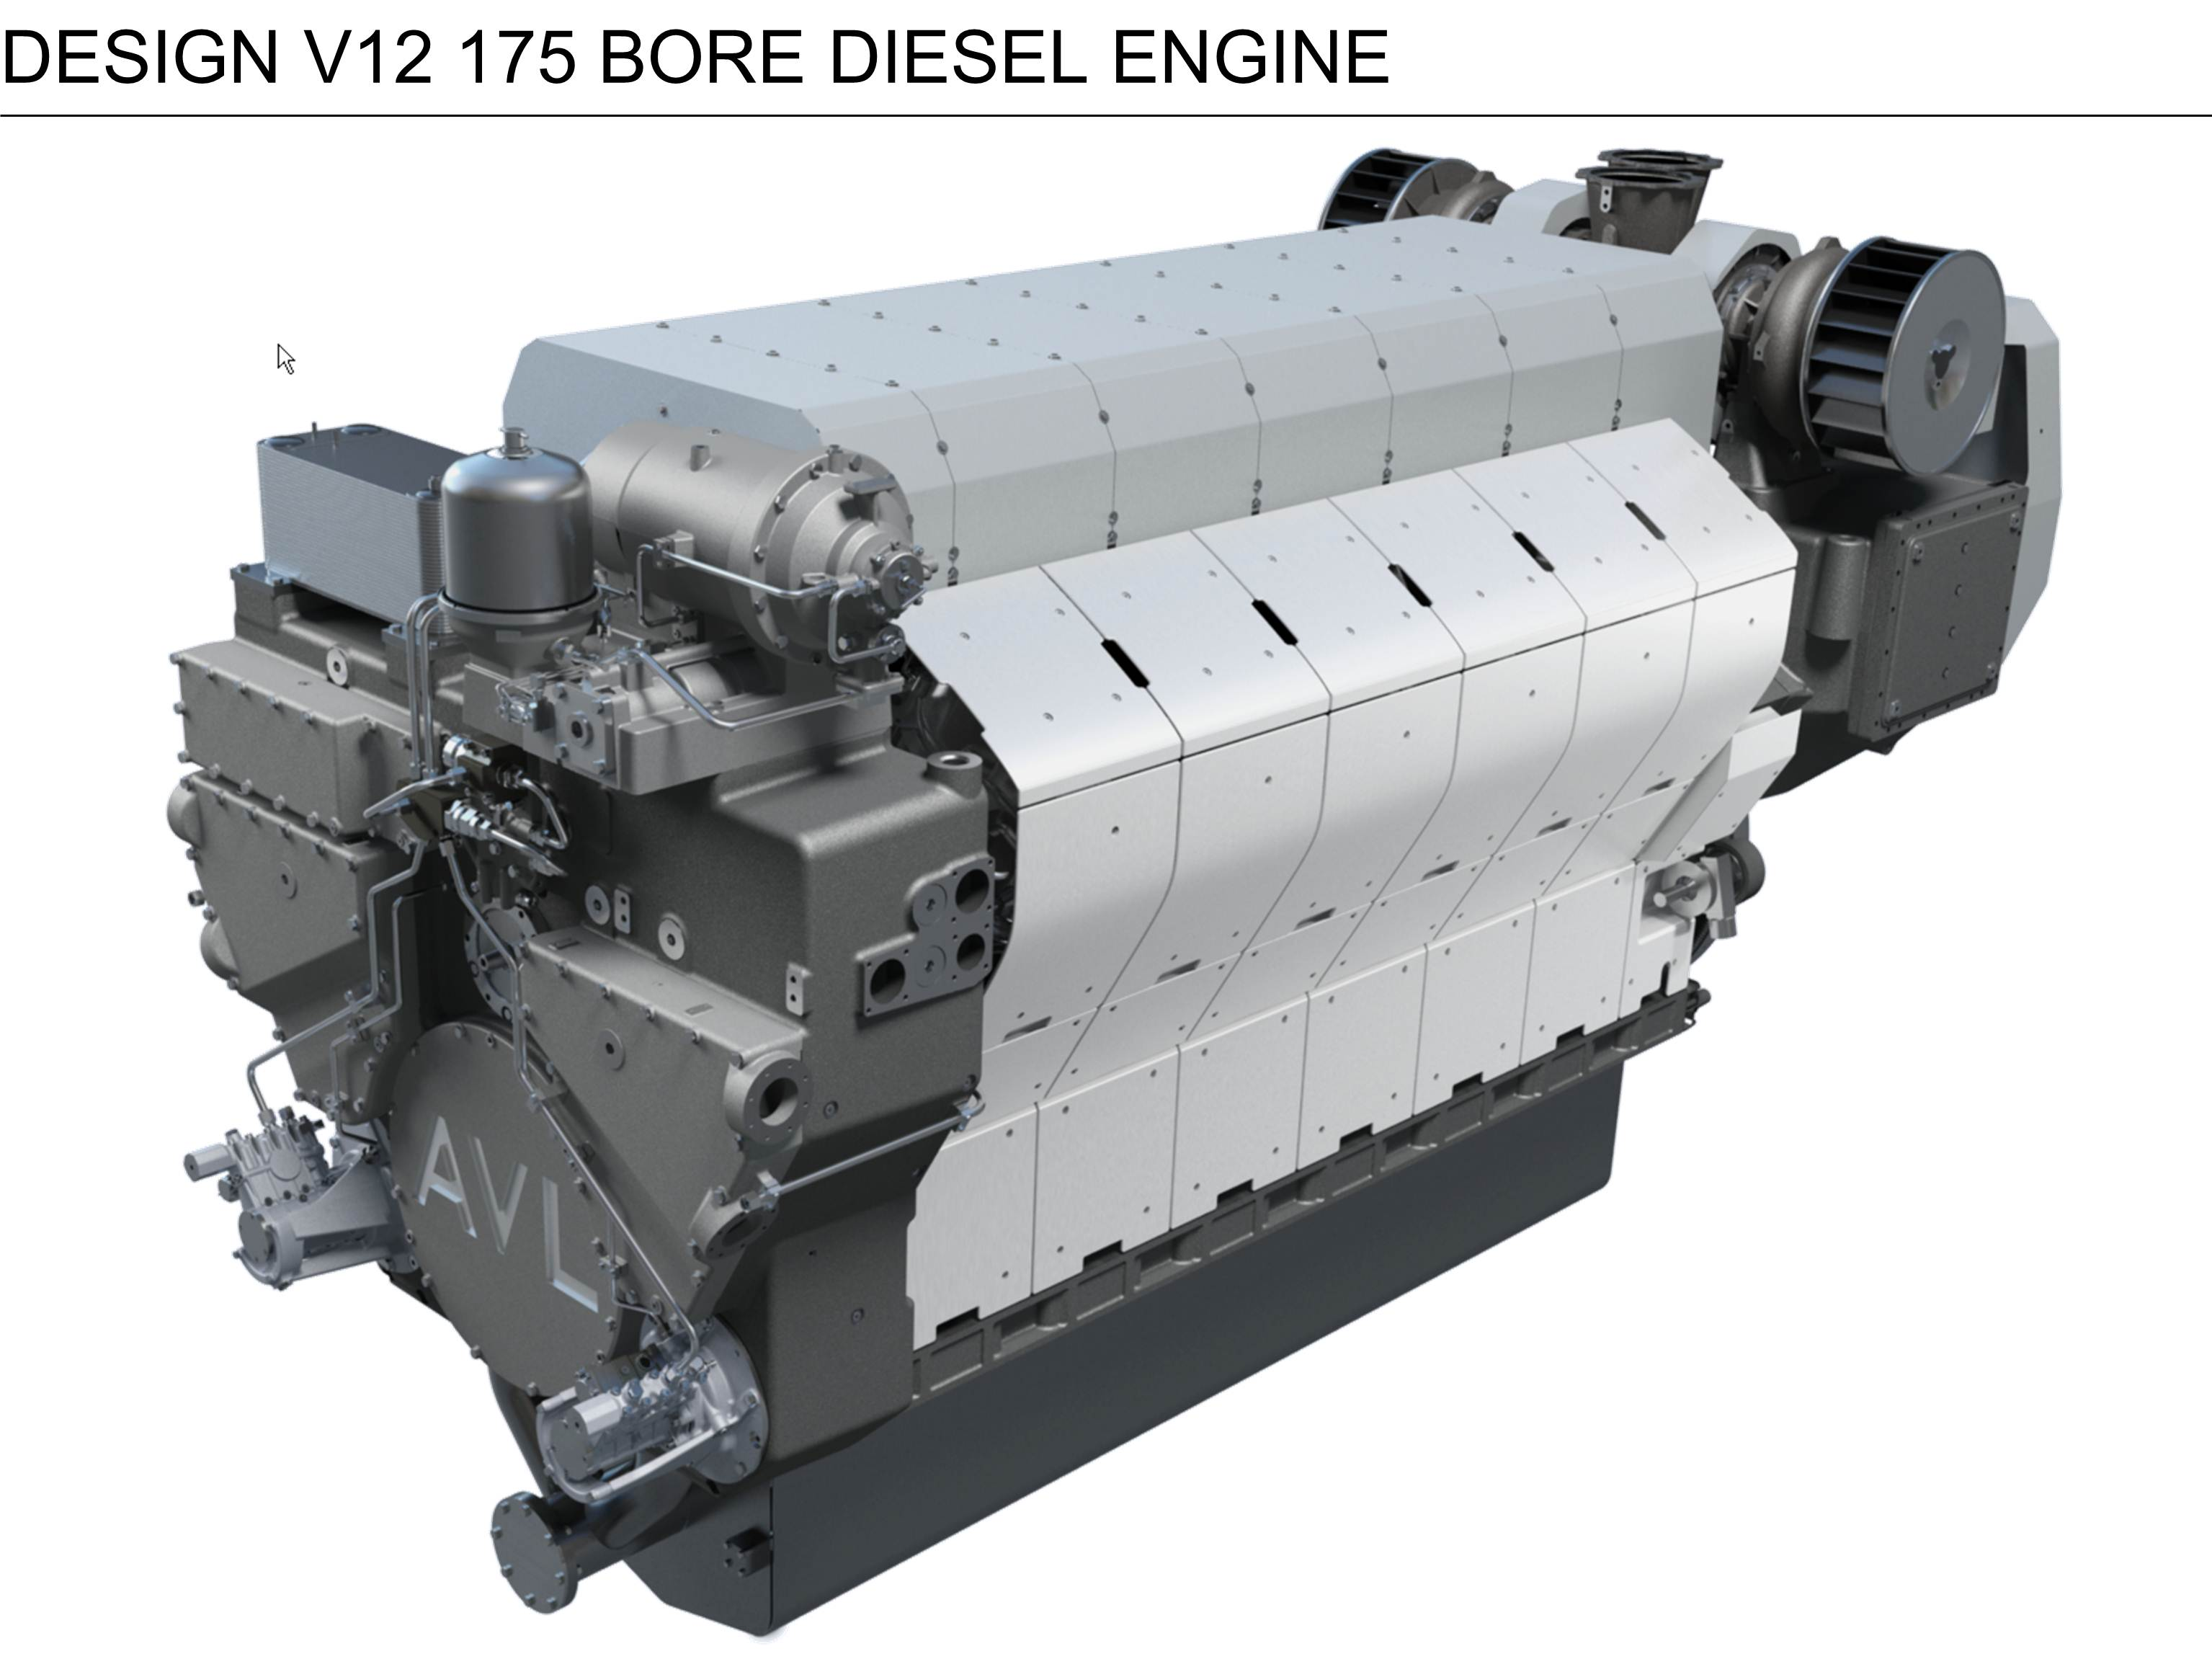 4 cycle engine definition 4 free engine image for user manual